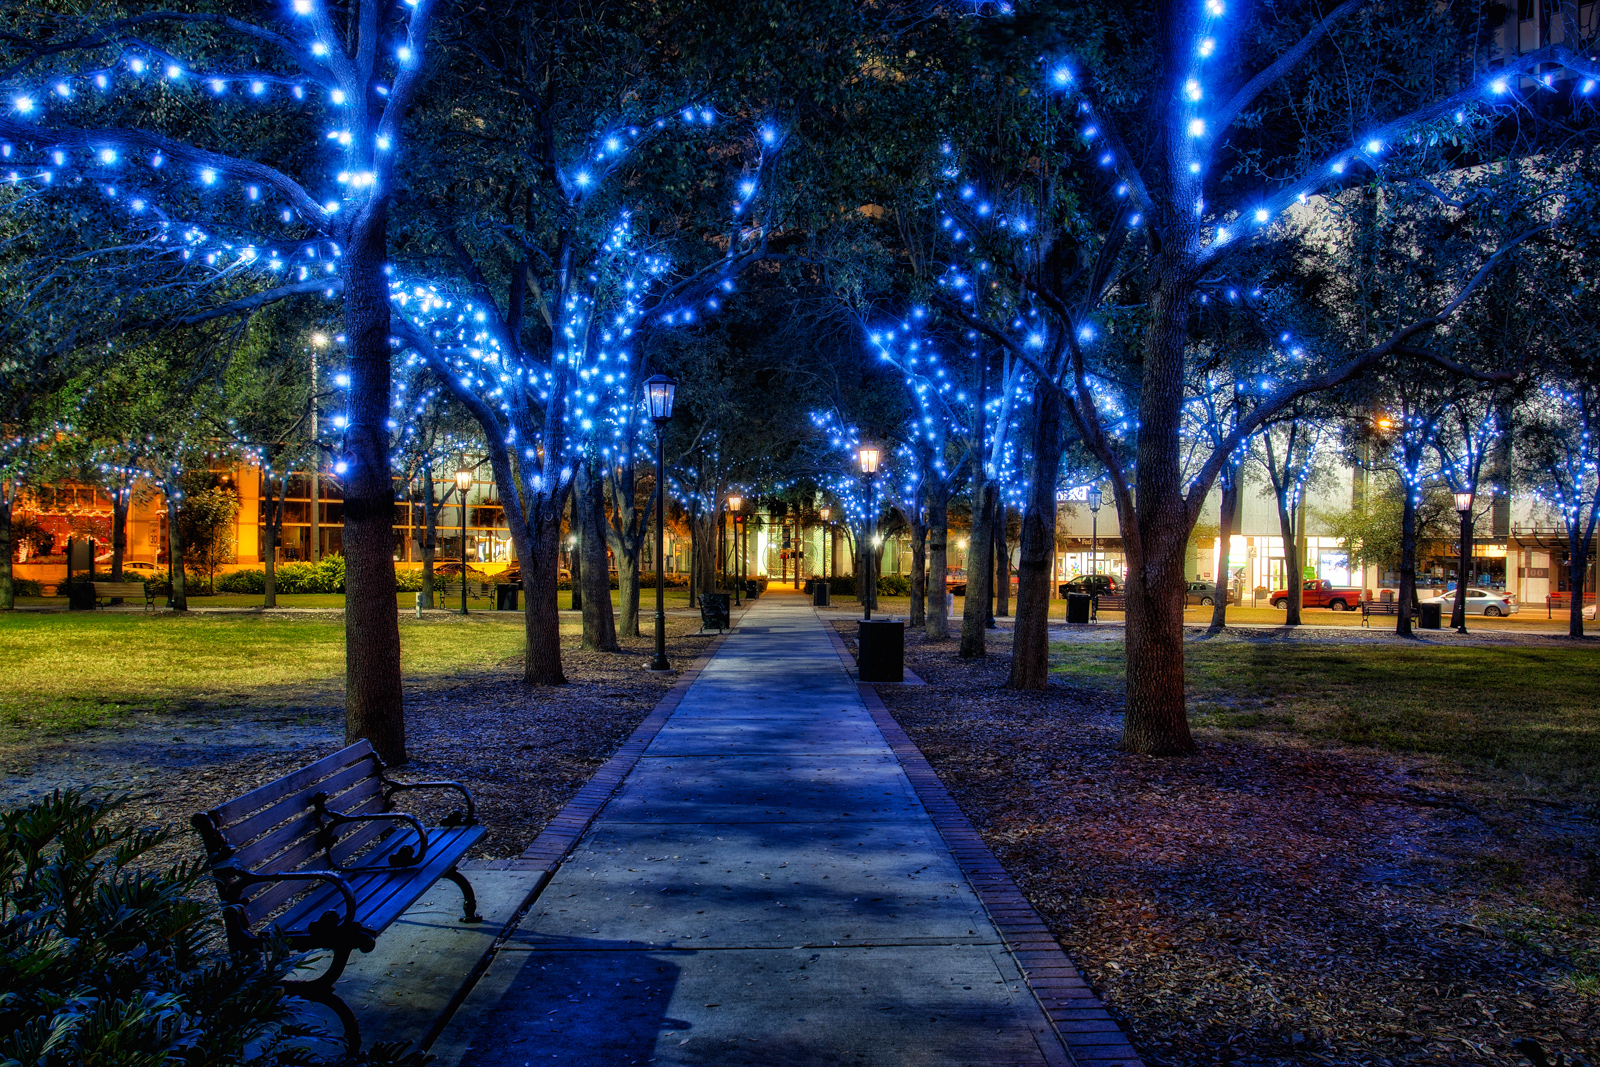 Christmas Lights in Lykes Gaslight Park